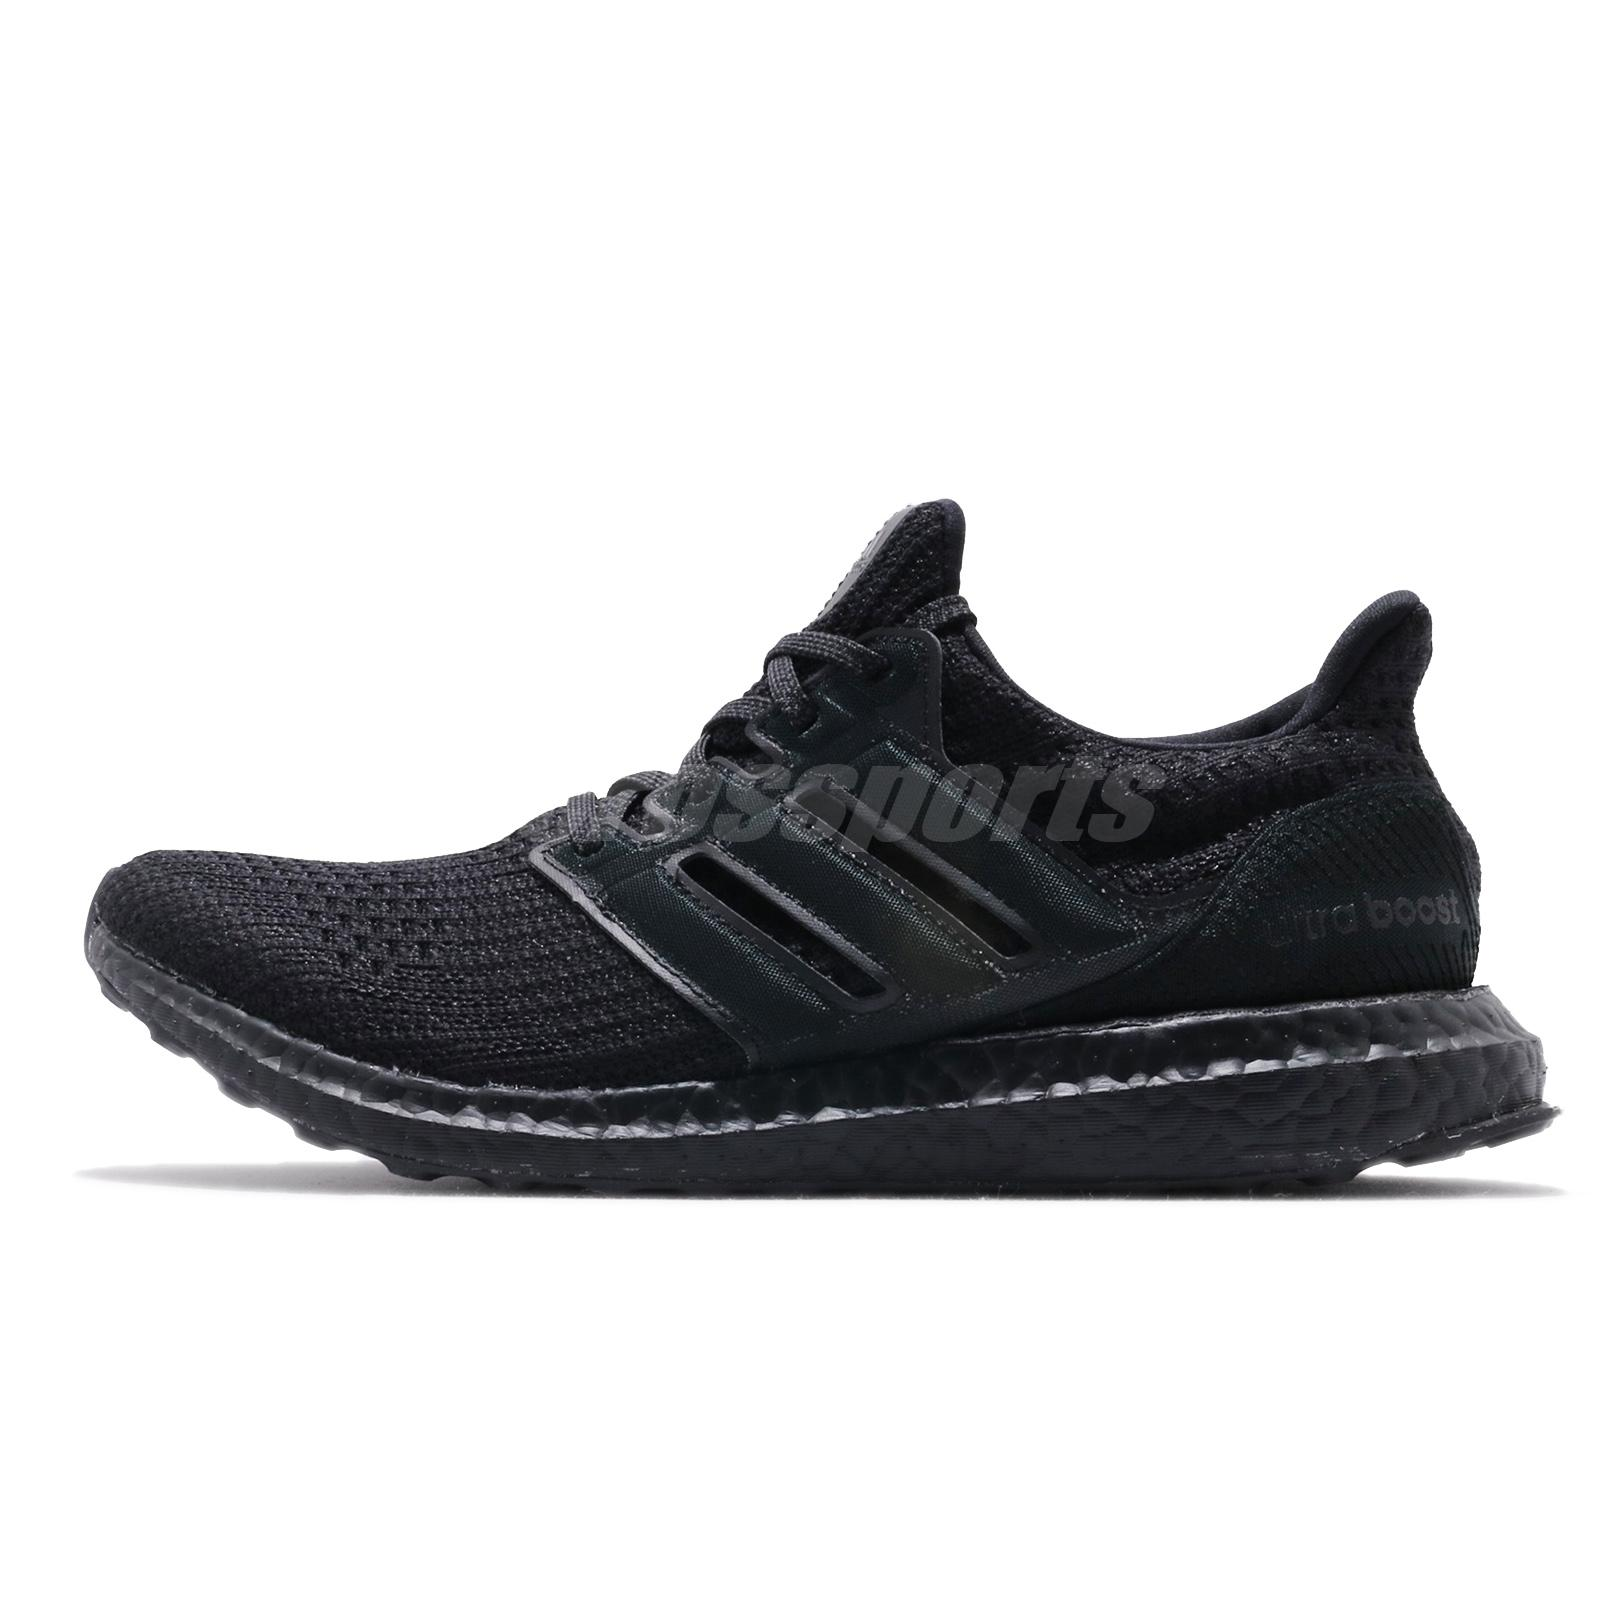 adidas UltraBOOST U Black Men Running Training Casual Shoes